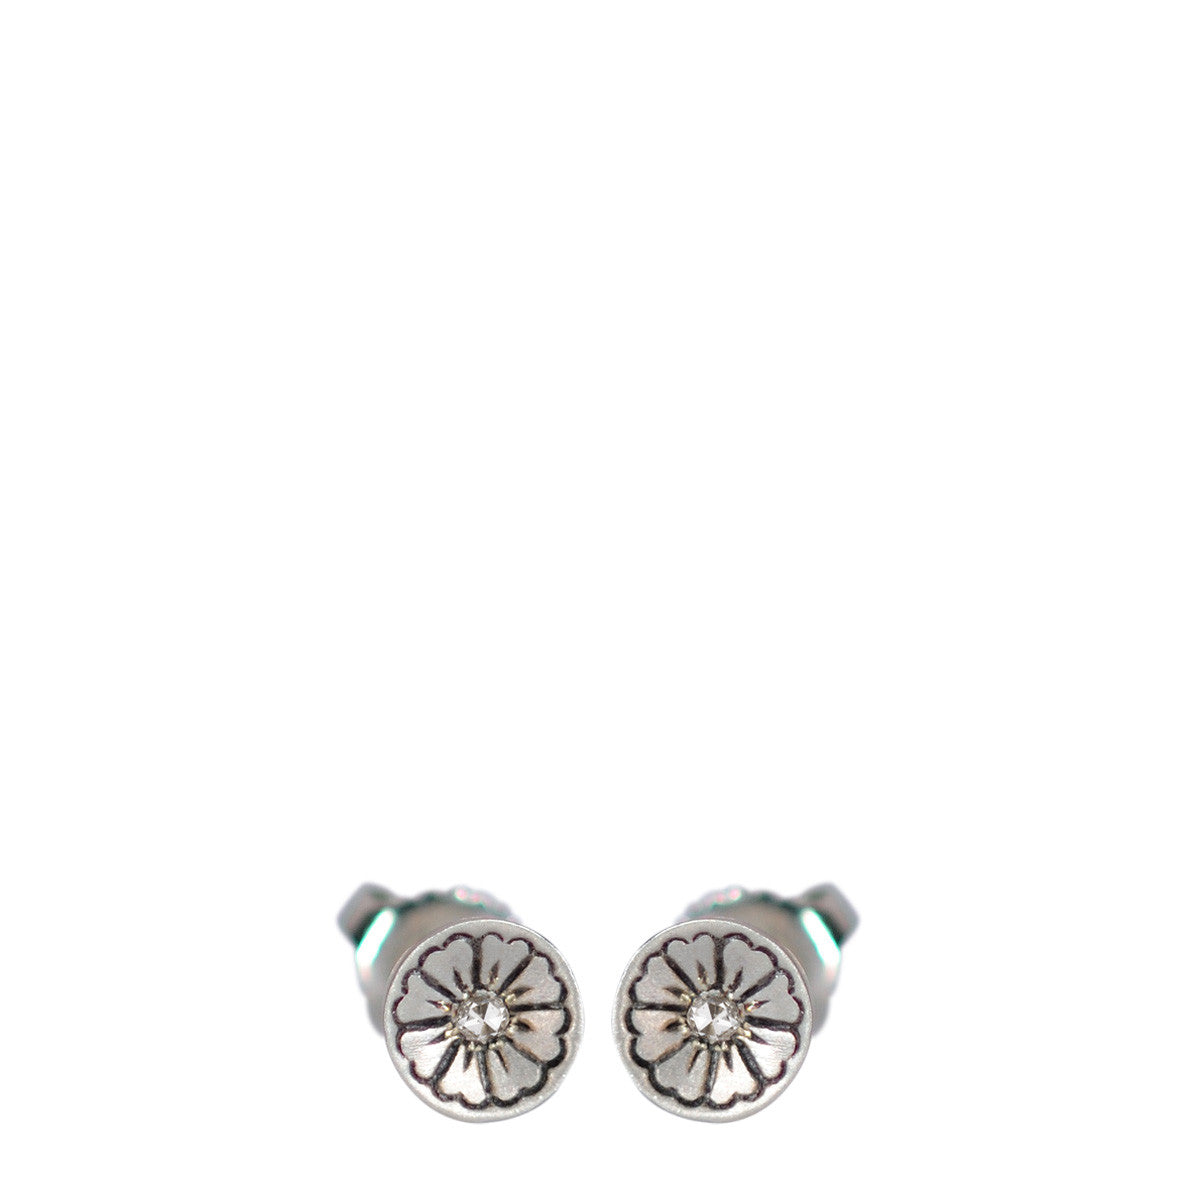 Sterling Silver Engraved Flower Stud Earrings with Diamonds